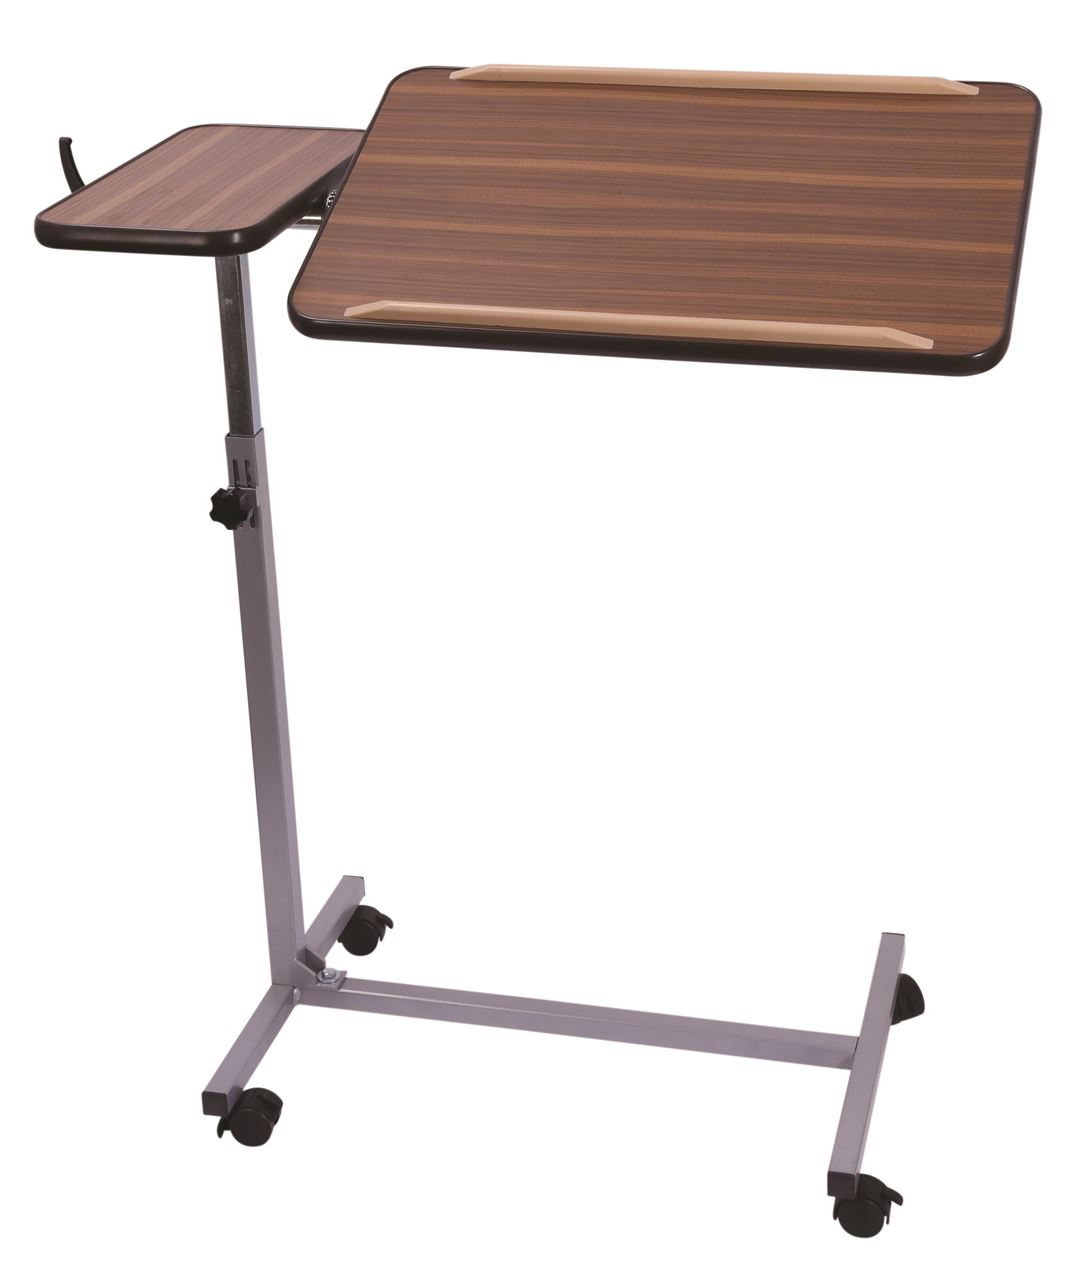 Picture for category Deluxe Adjustable Overbed Table